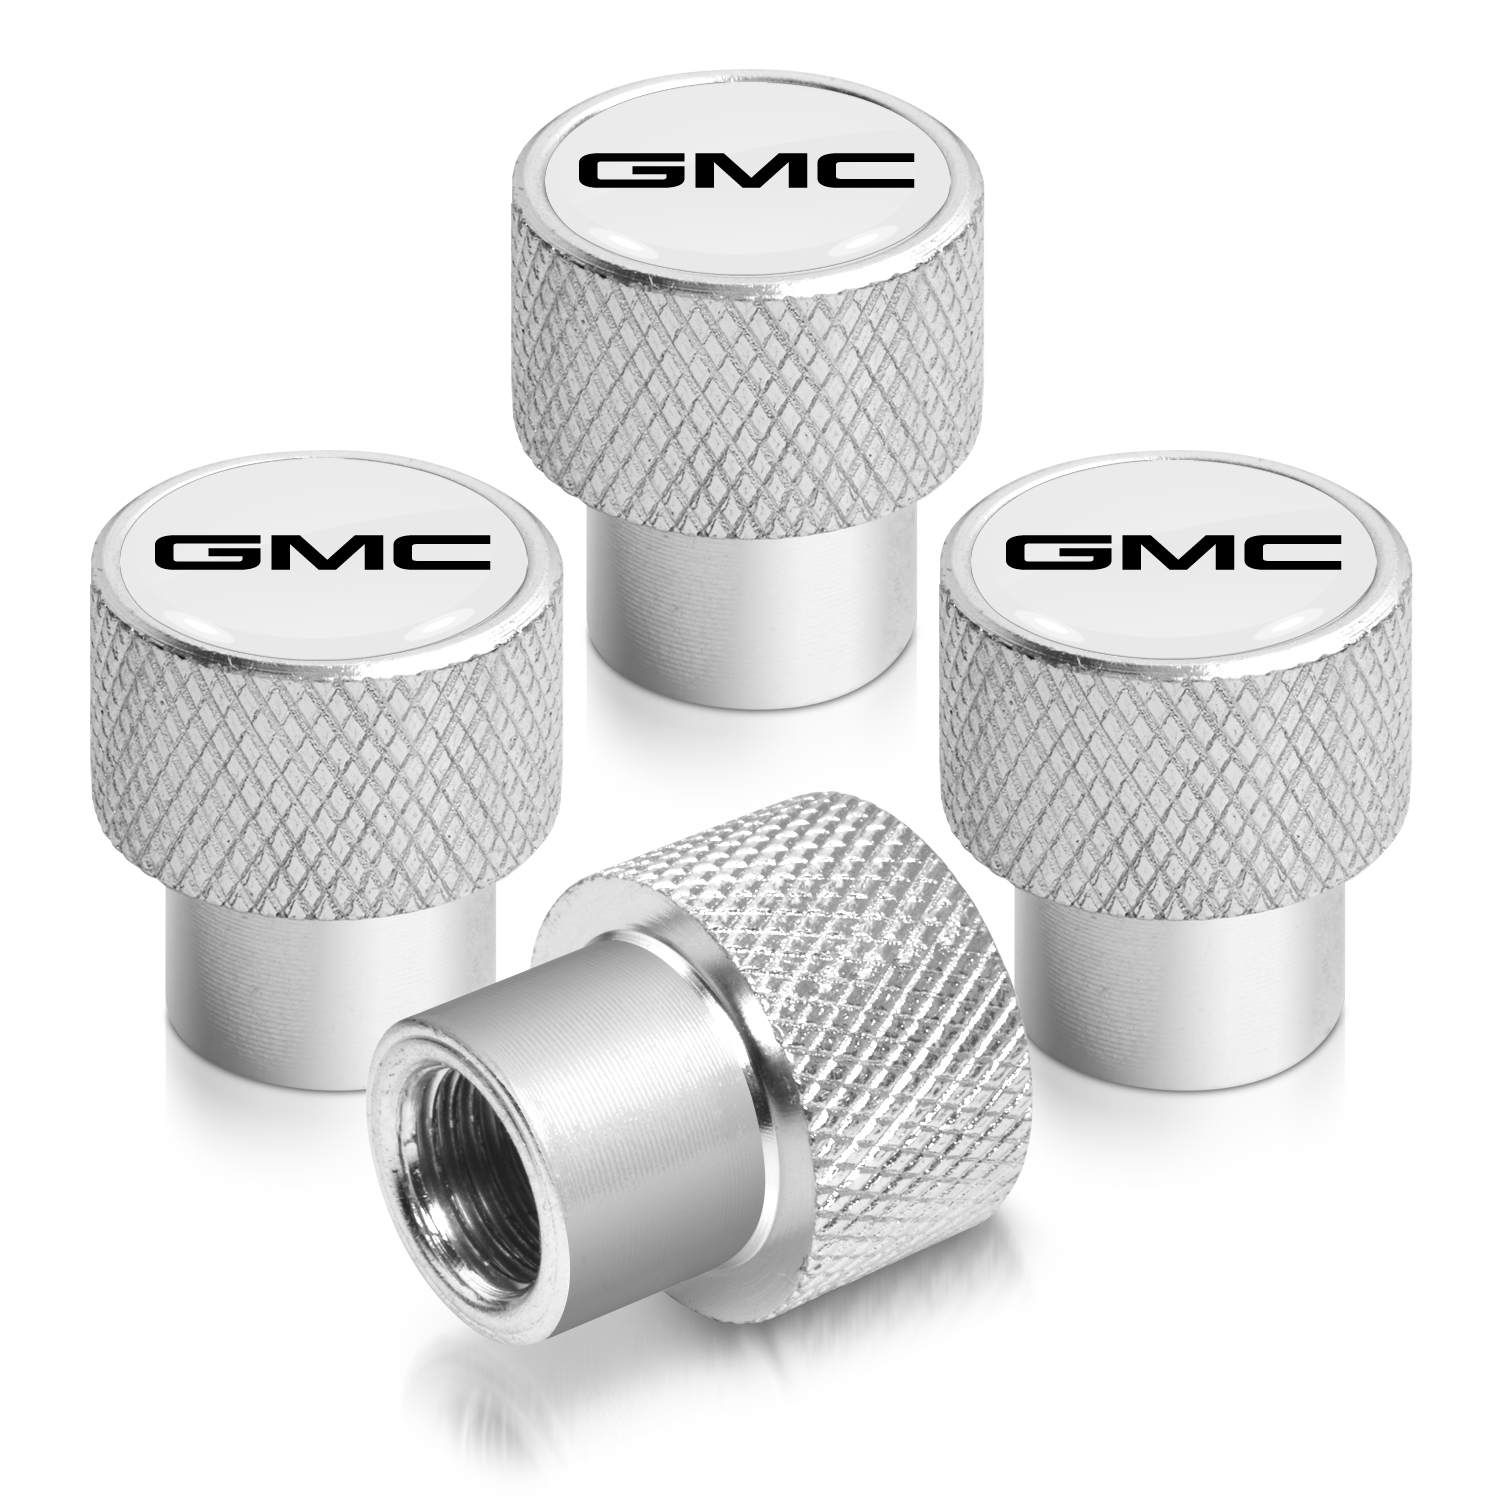 GMC Logo in White on Shining Silver Aluminum Tire Valve Stem Caps